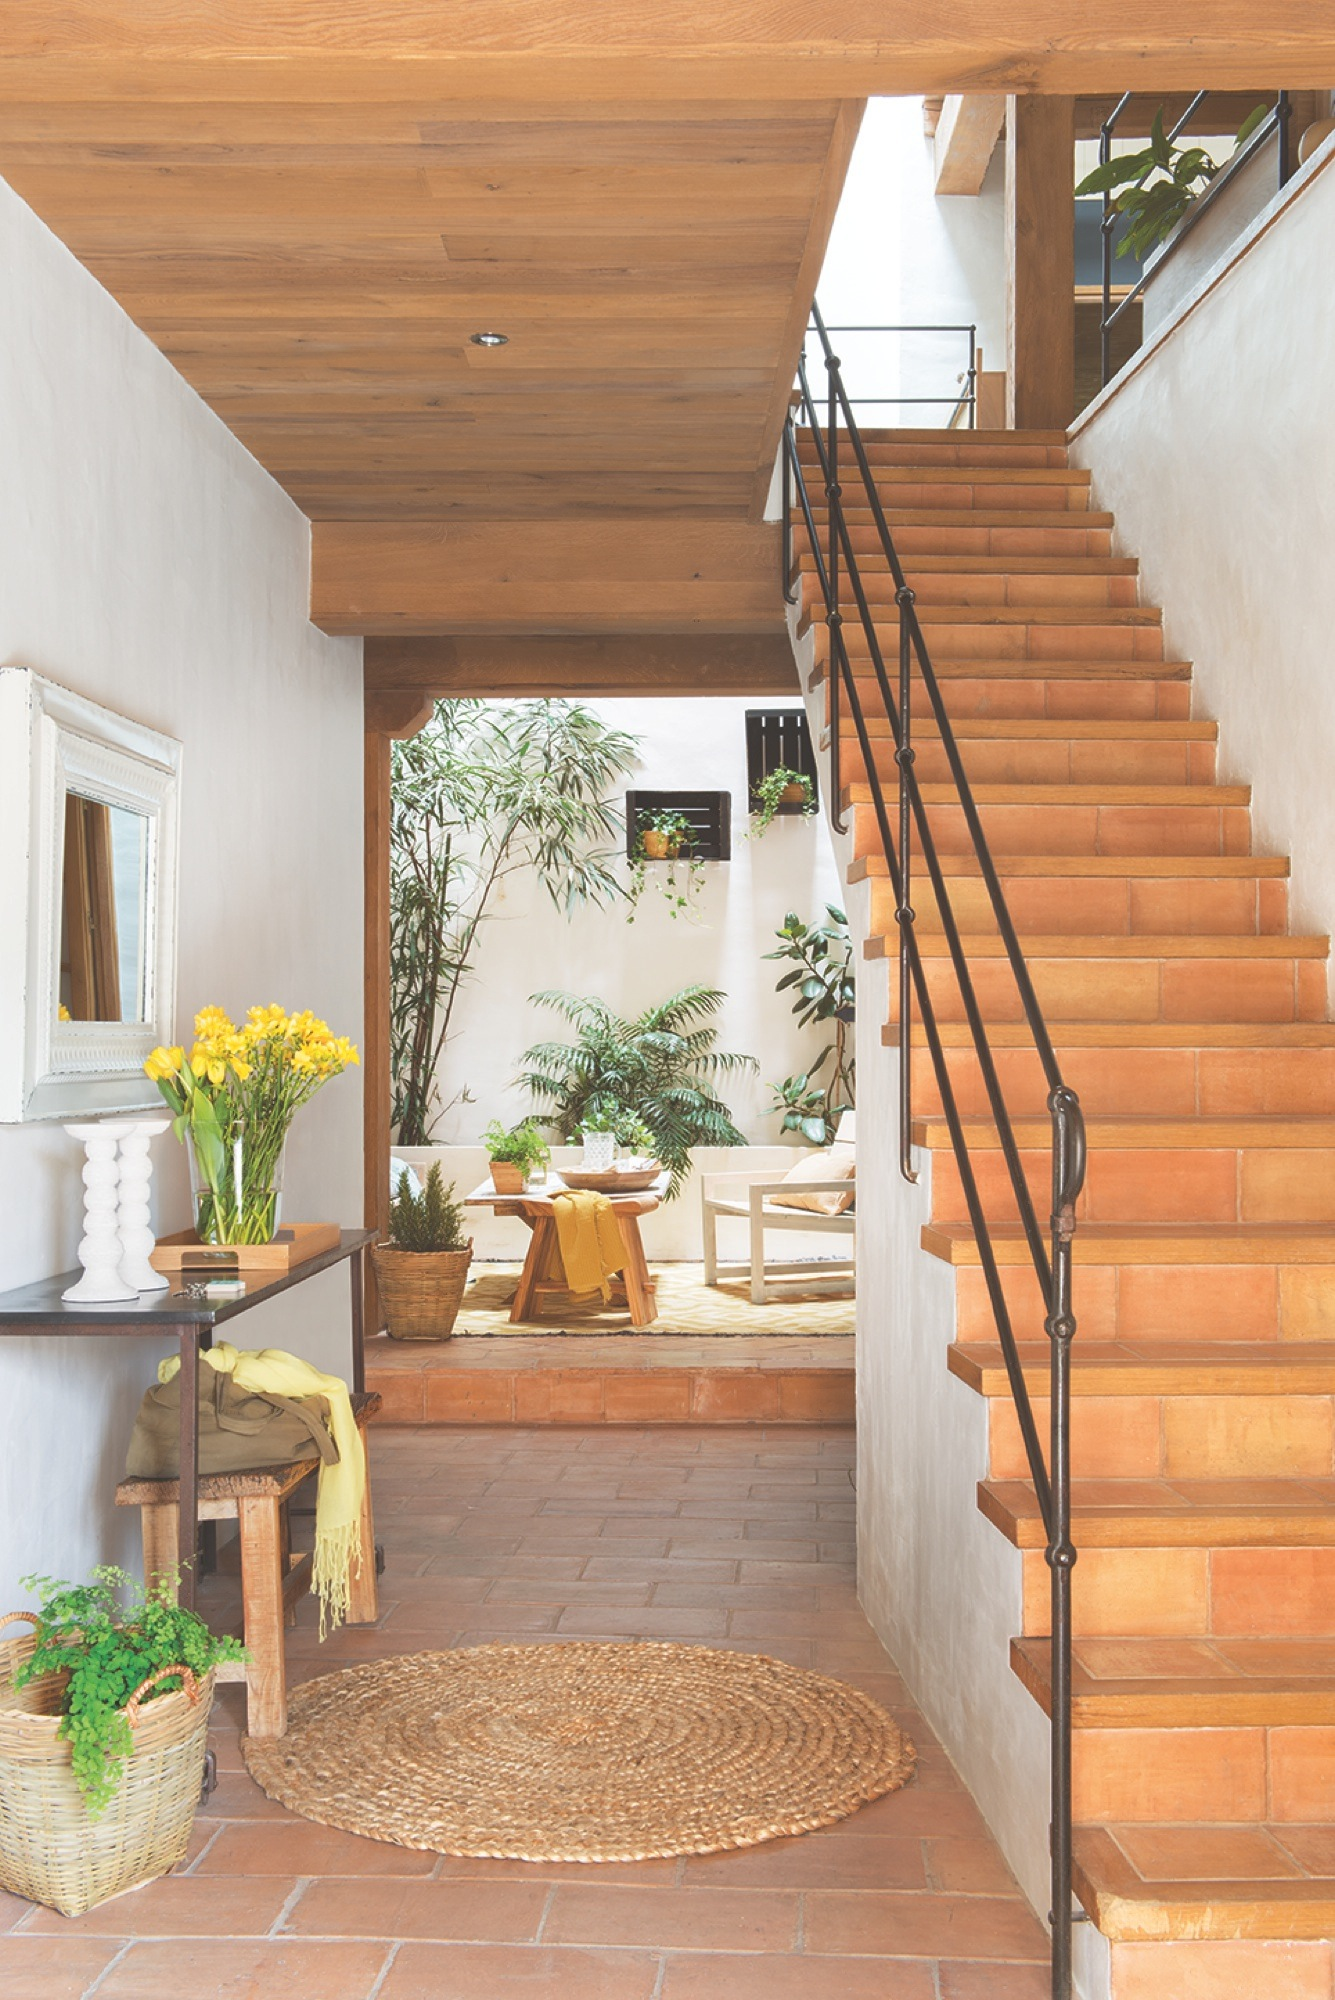 Esta casa no tiene wifi tiene desconnecting for Escaleras zara home